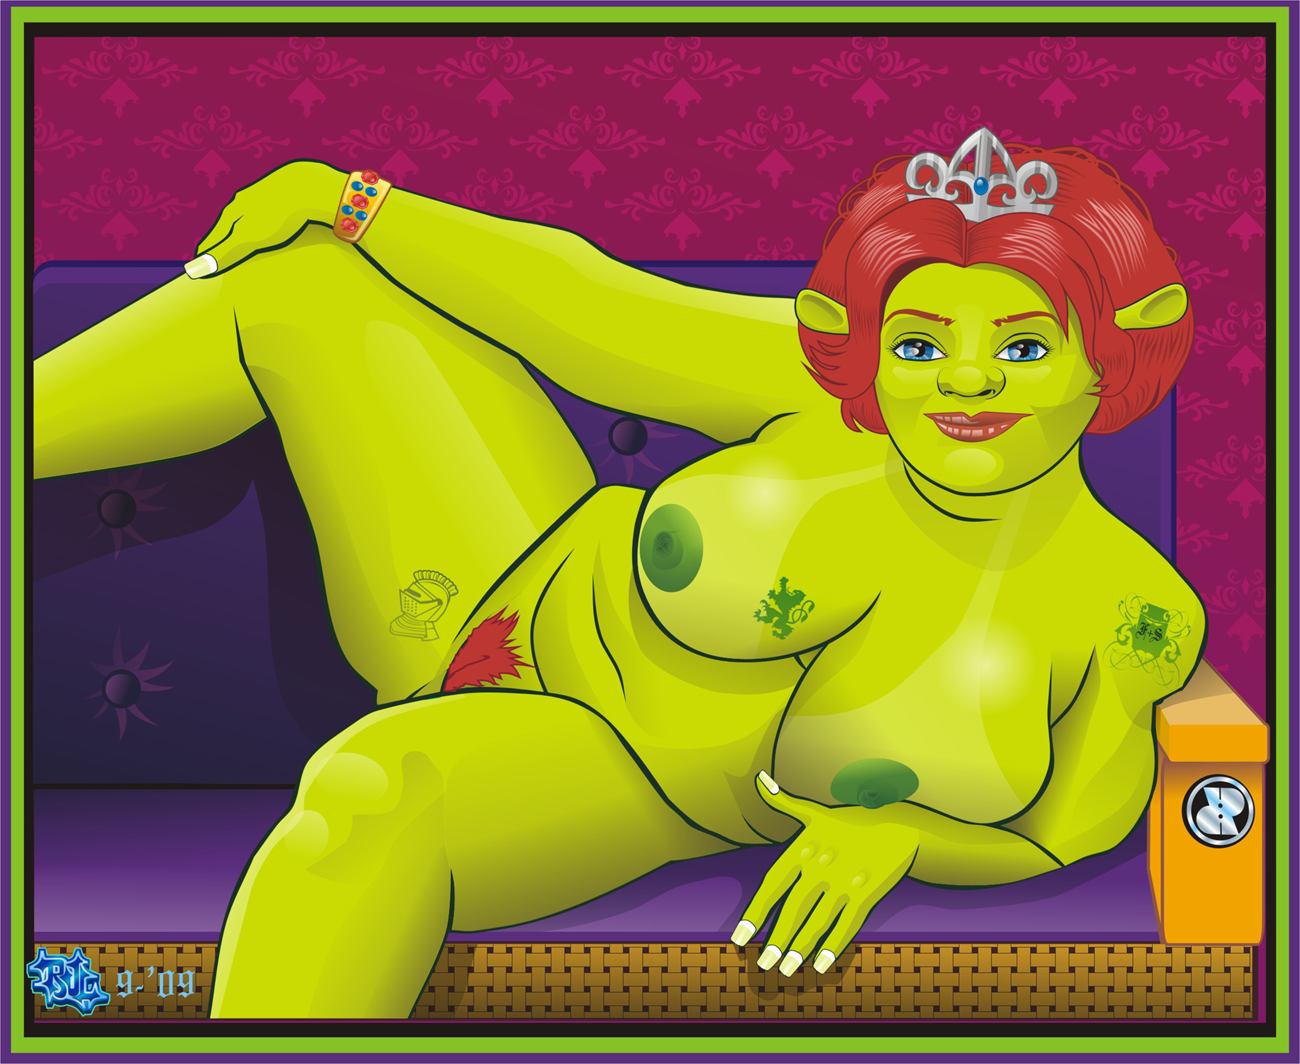 Shrek and fiona nude photo erotic pornstar